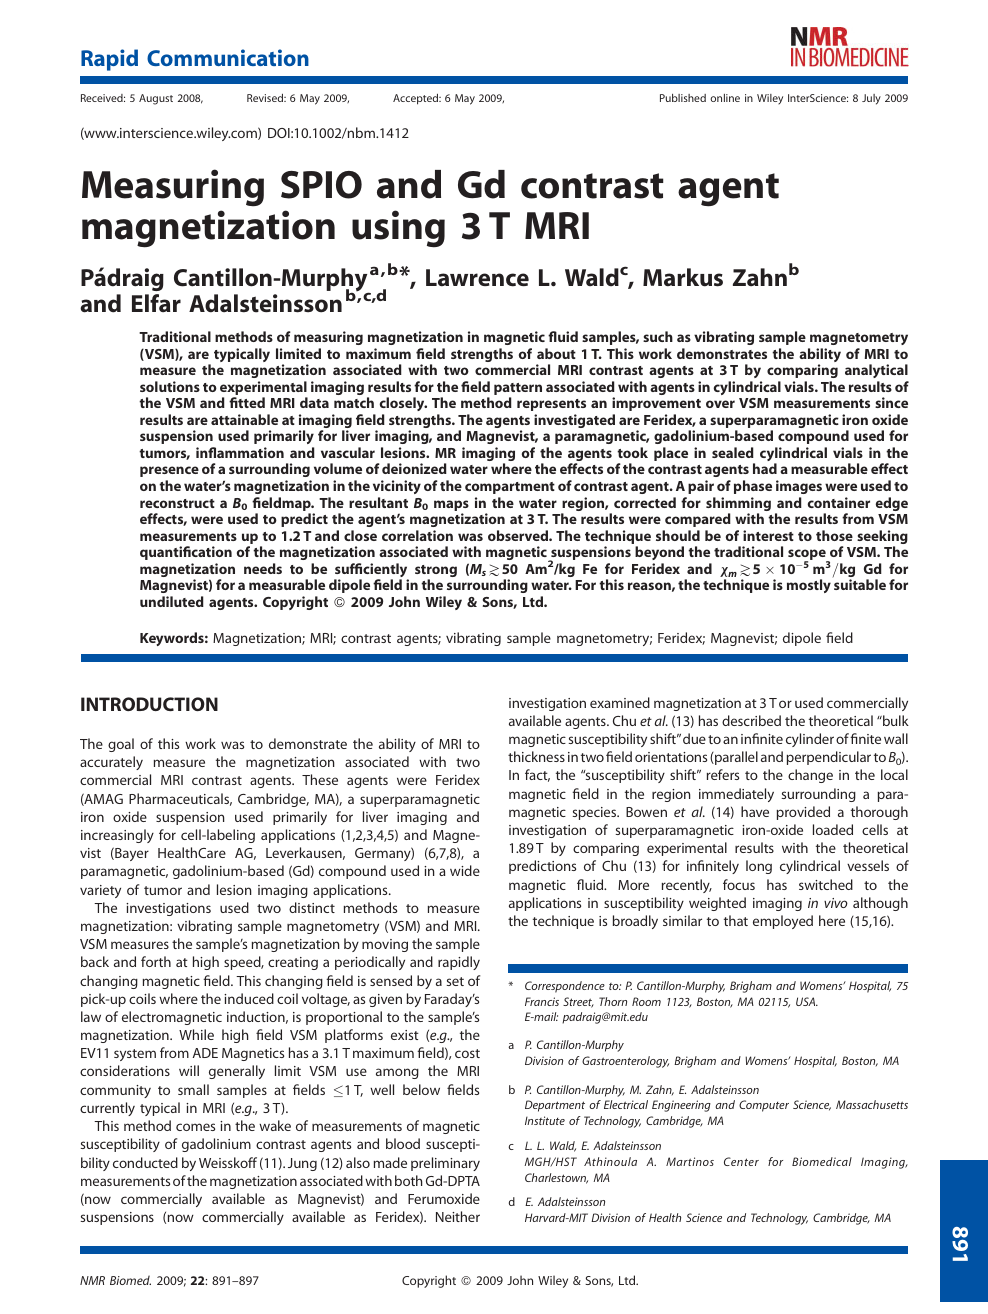 Measuring SPIO and Gd contrast agent magnetization using 3 T MRI